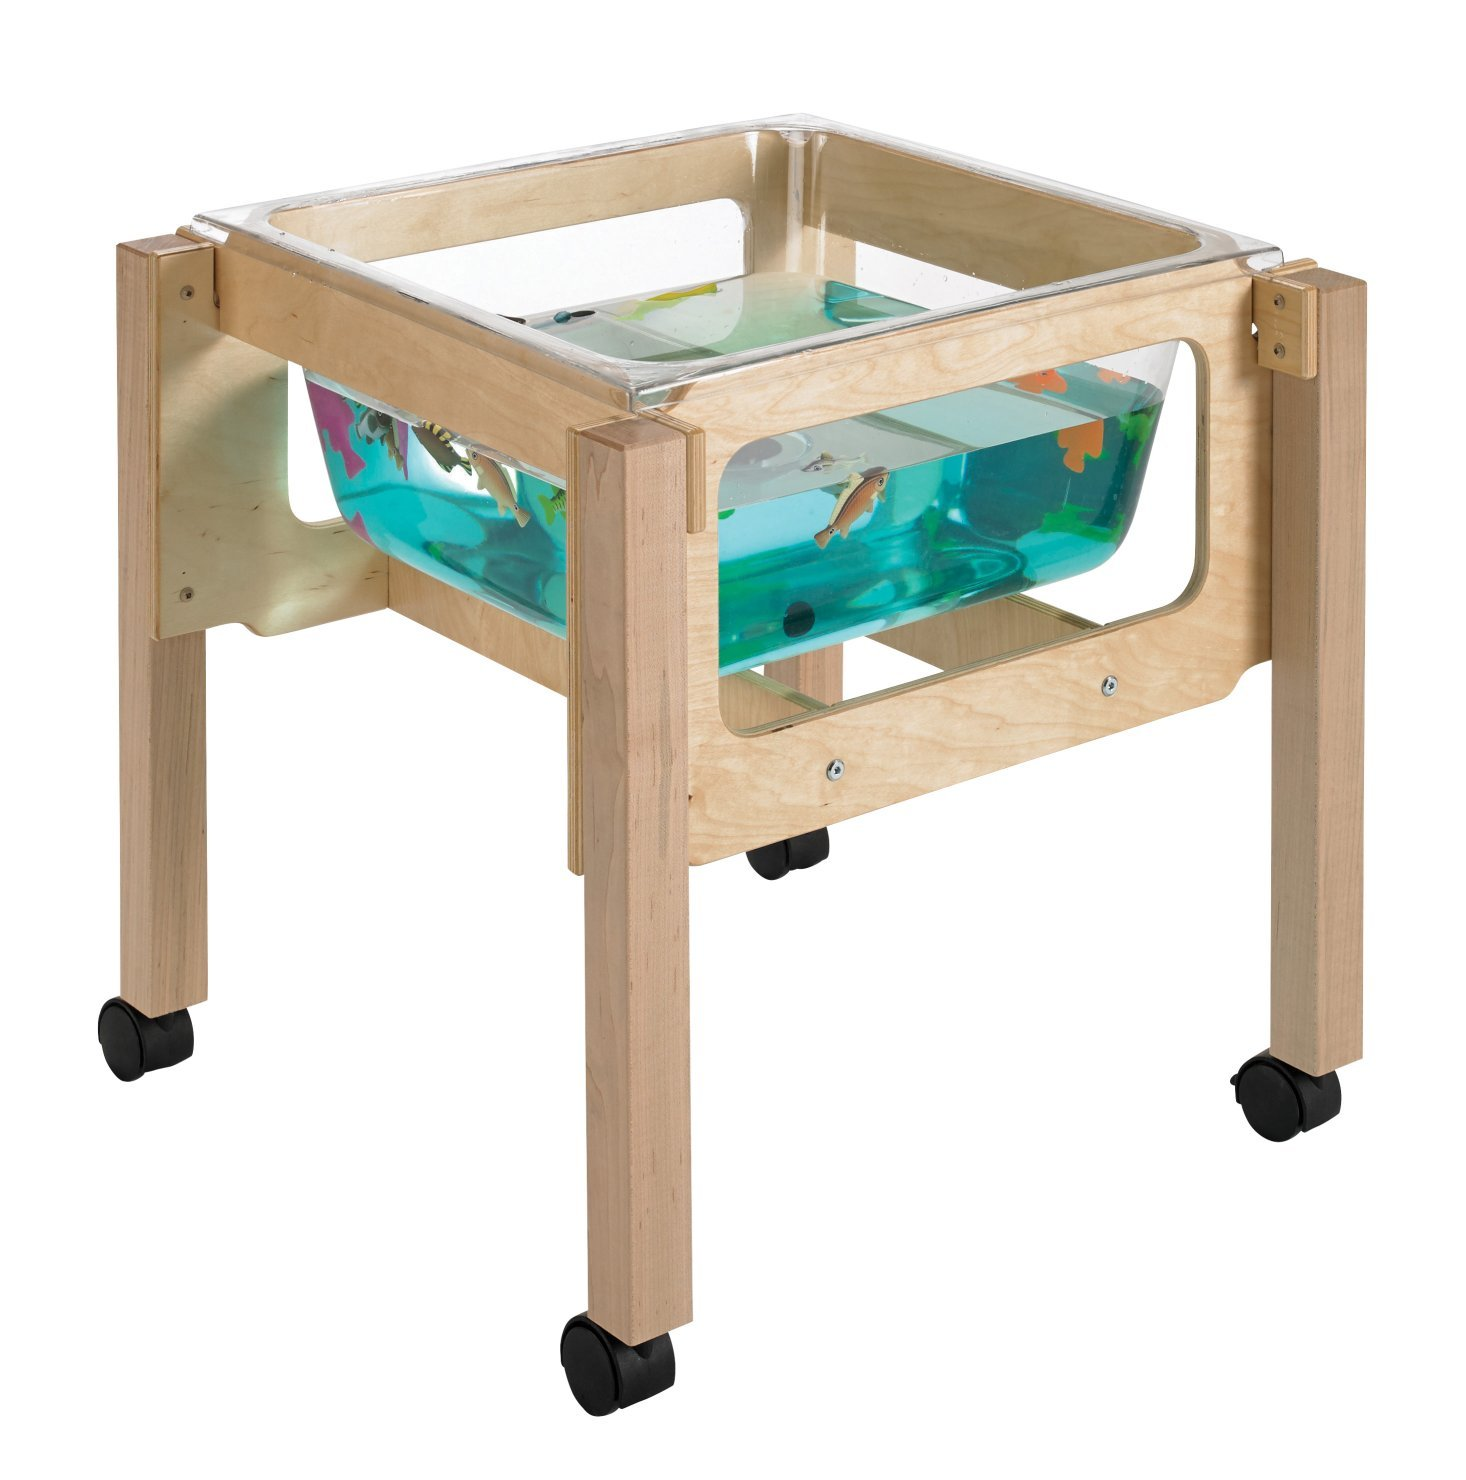 Childcraft 1491069 Sand and Water Table, 24'' Height, 23.25'' Width, 23.25'' Length, Natural Wood by Childcraft